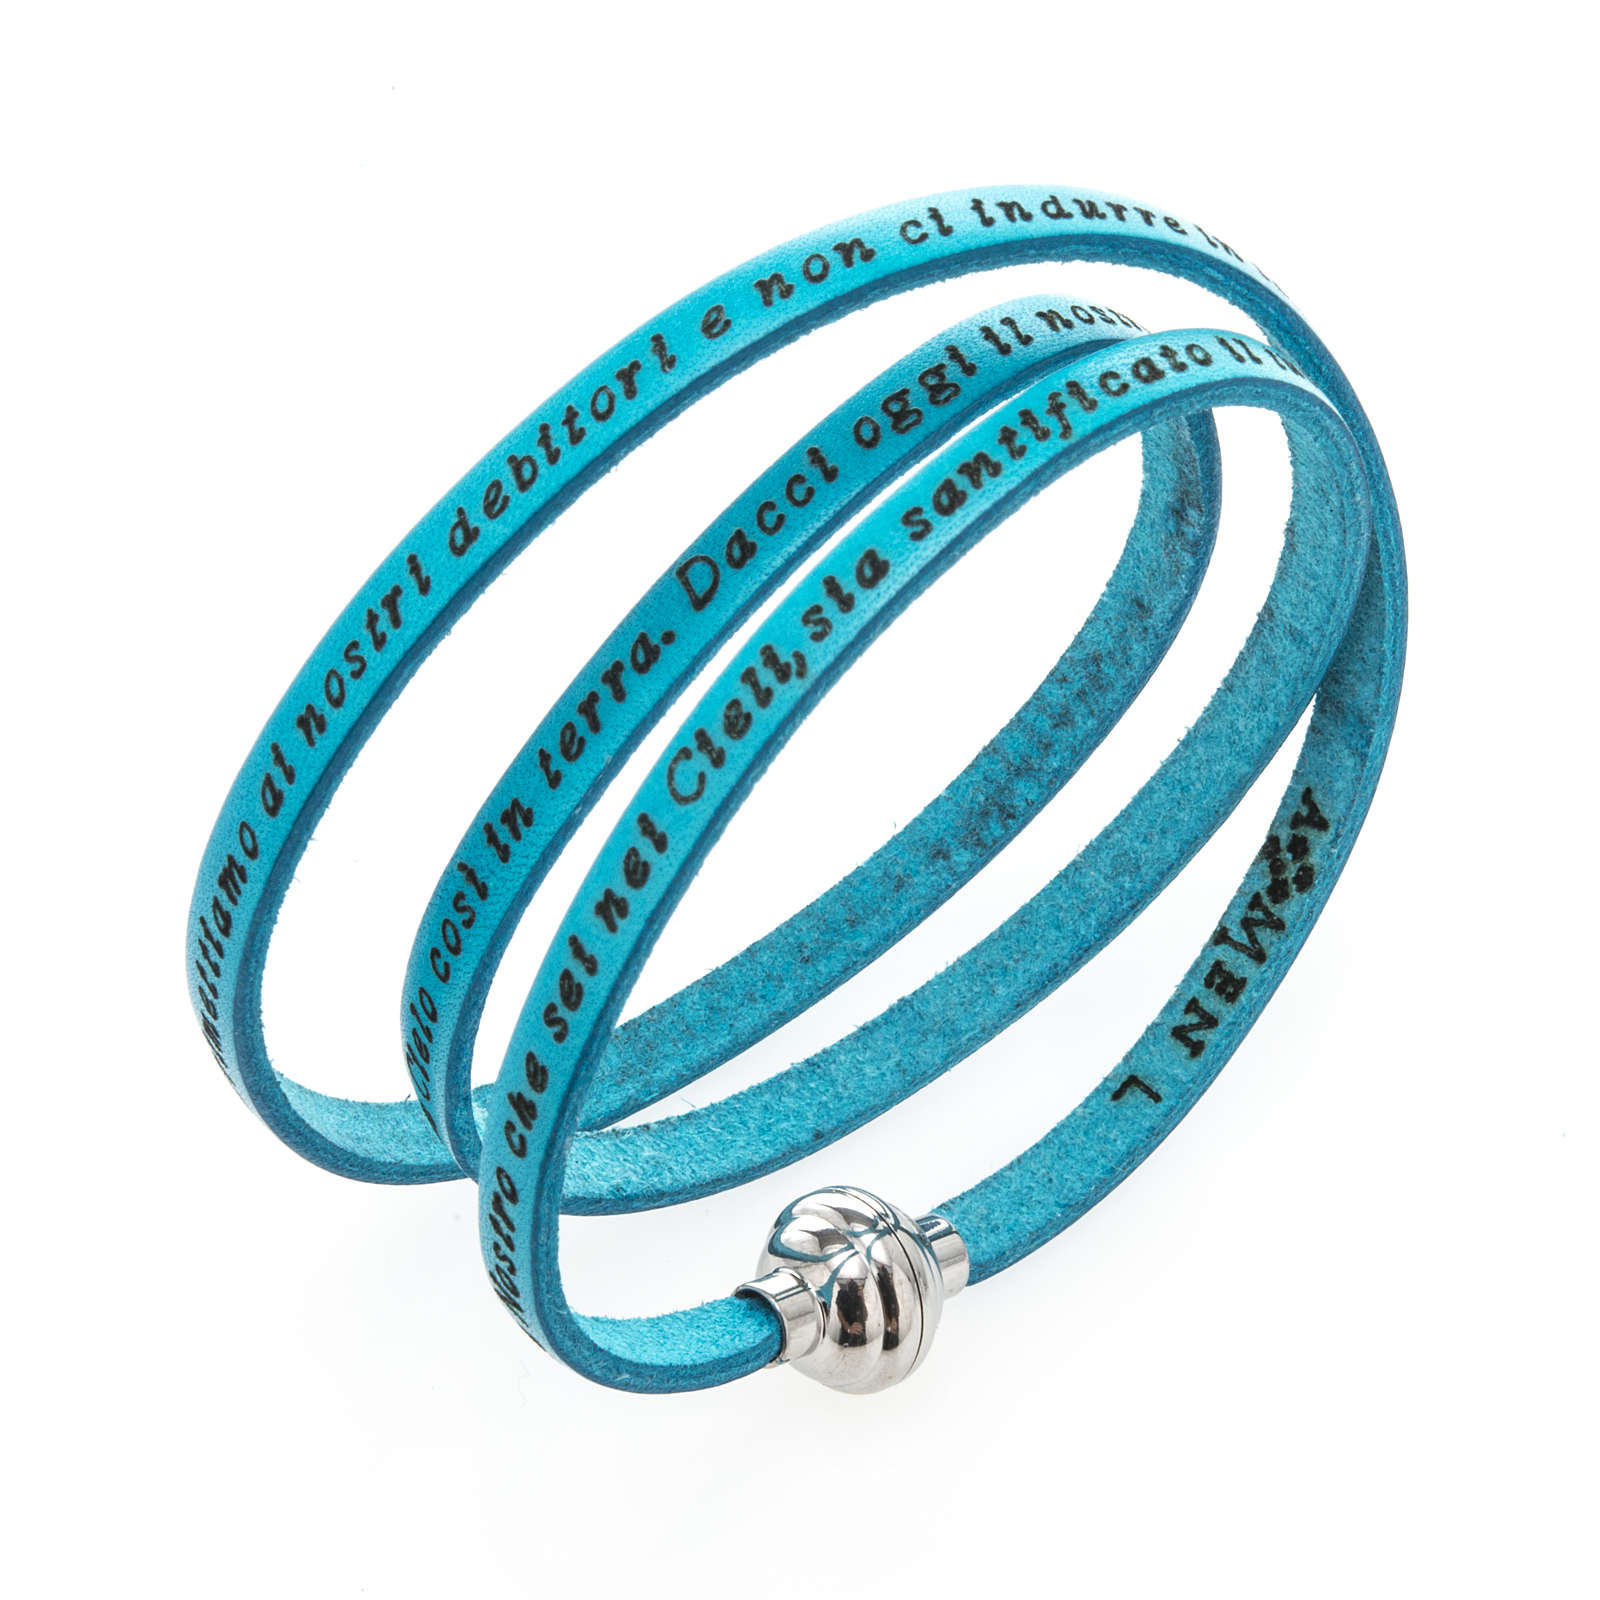 Amen Bracelet in turquoise leather Our Father ITA 4